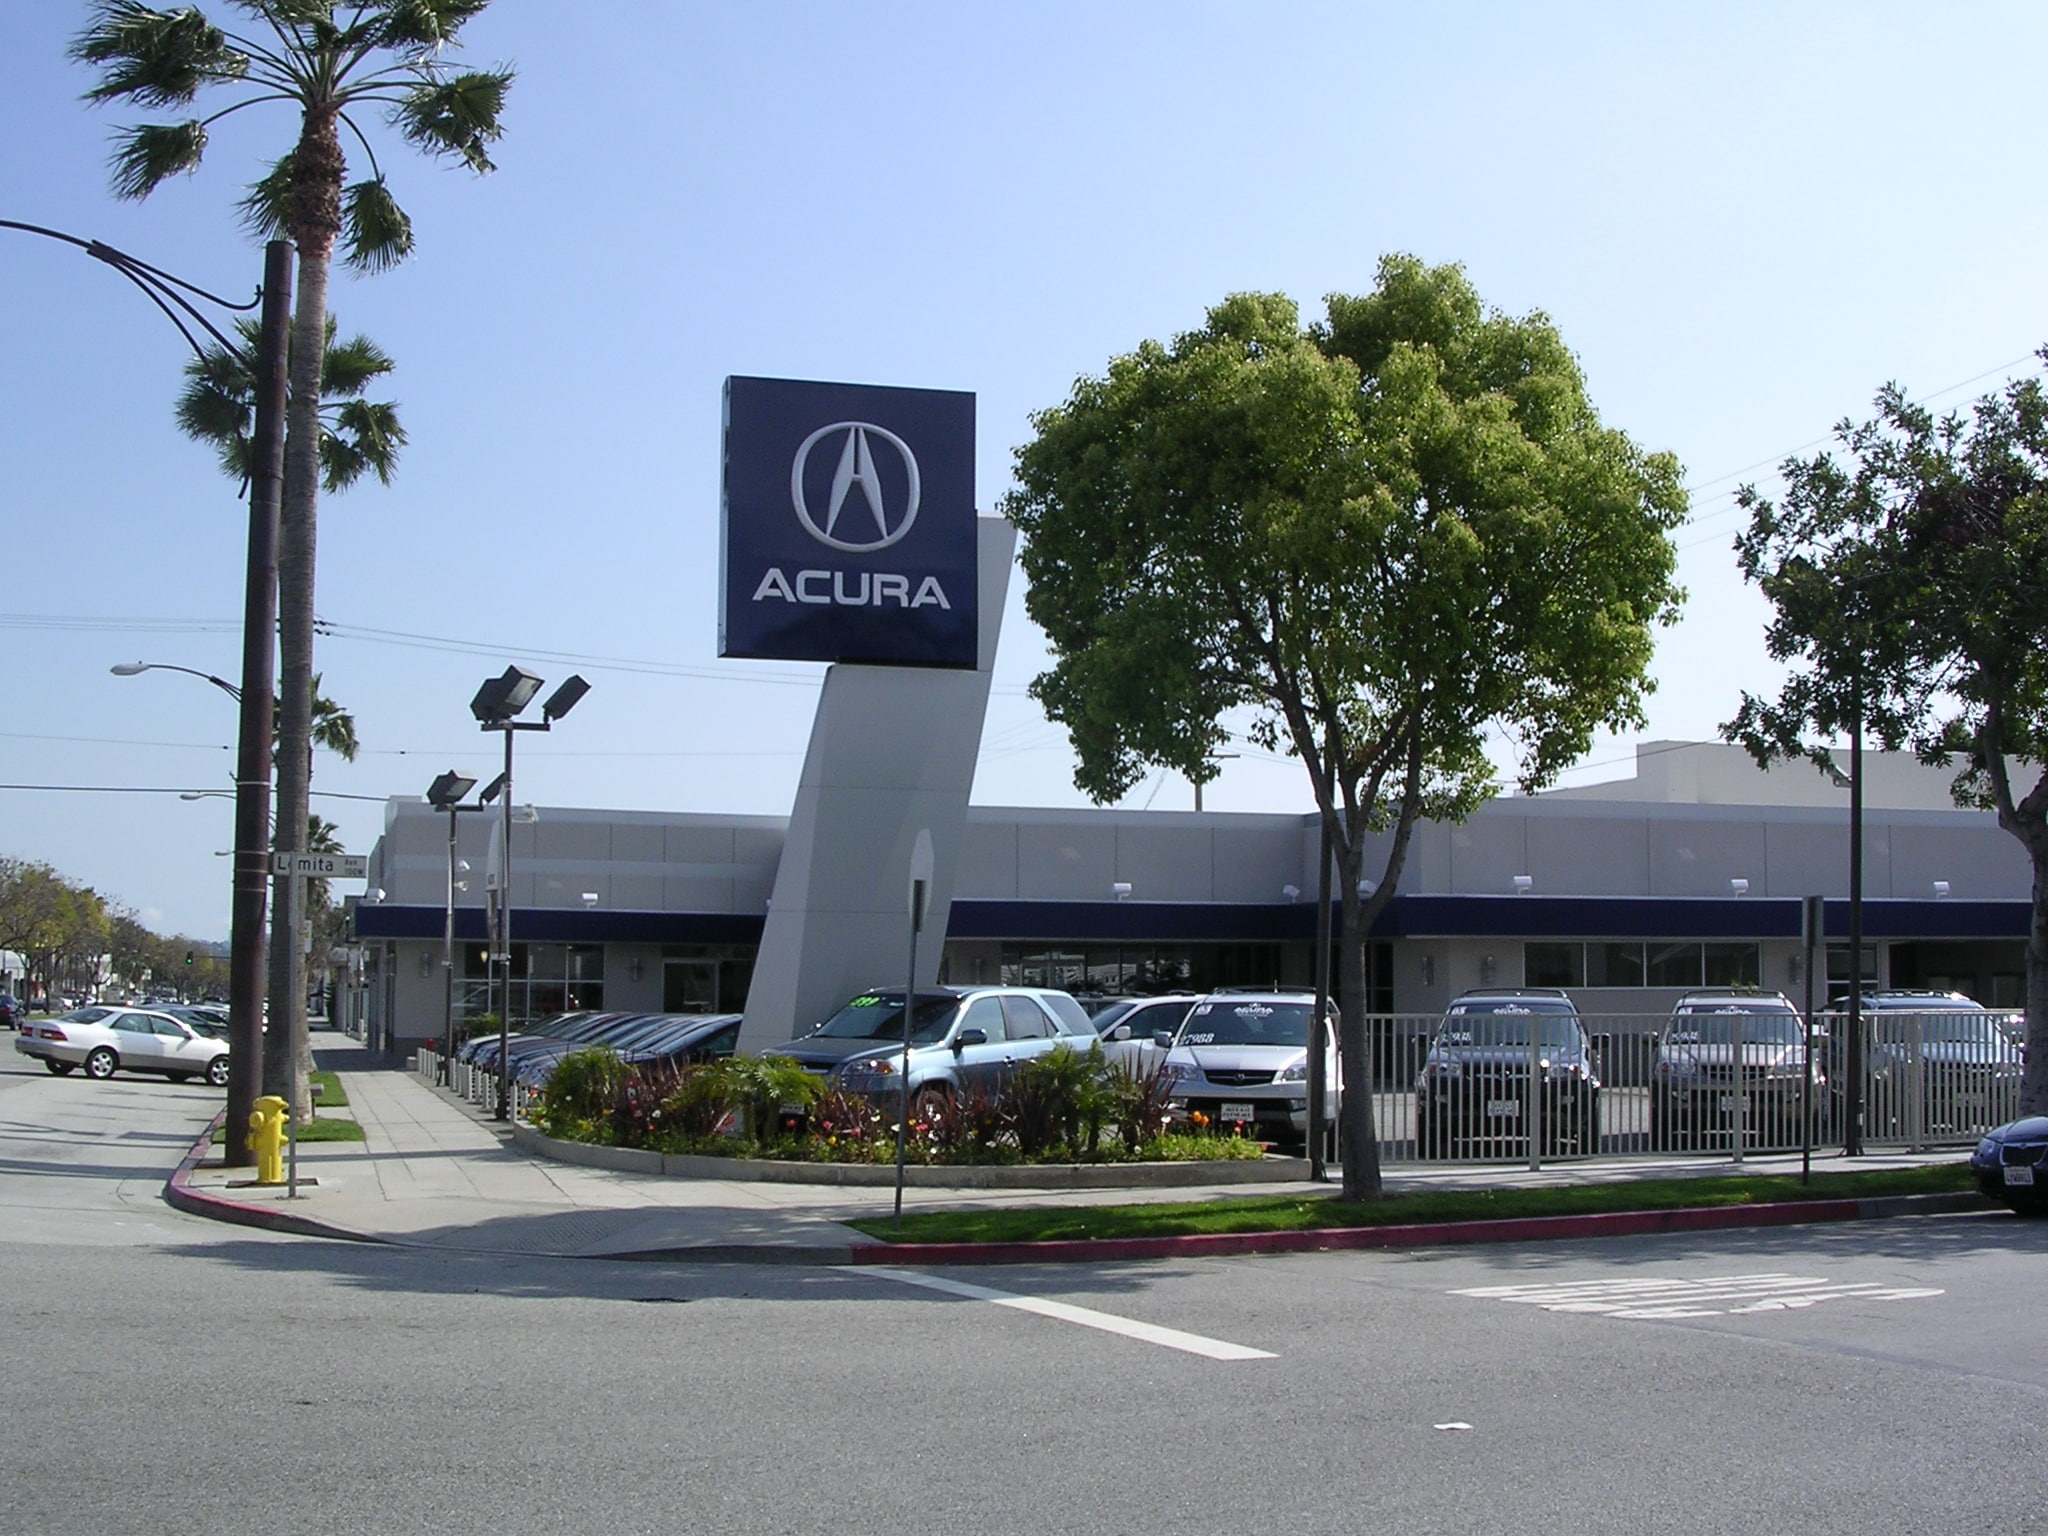 acura service and repairs acura maintenance in glendale ca. Black Bedroom Furniture Sets. Home Design Ideas